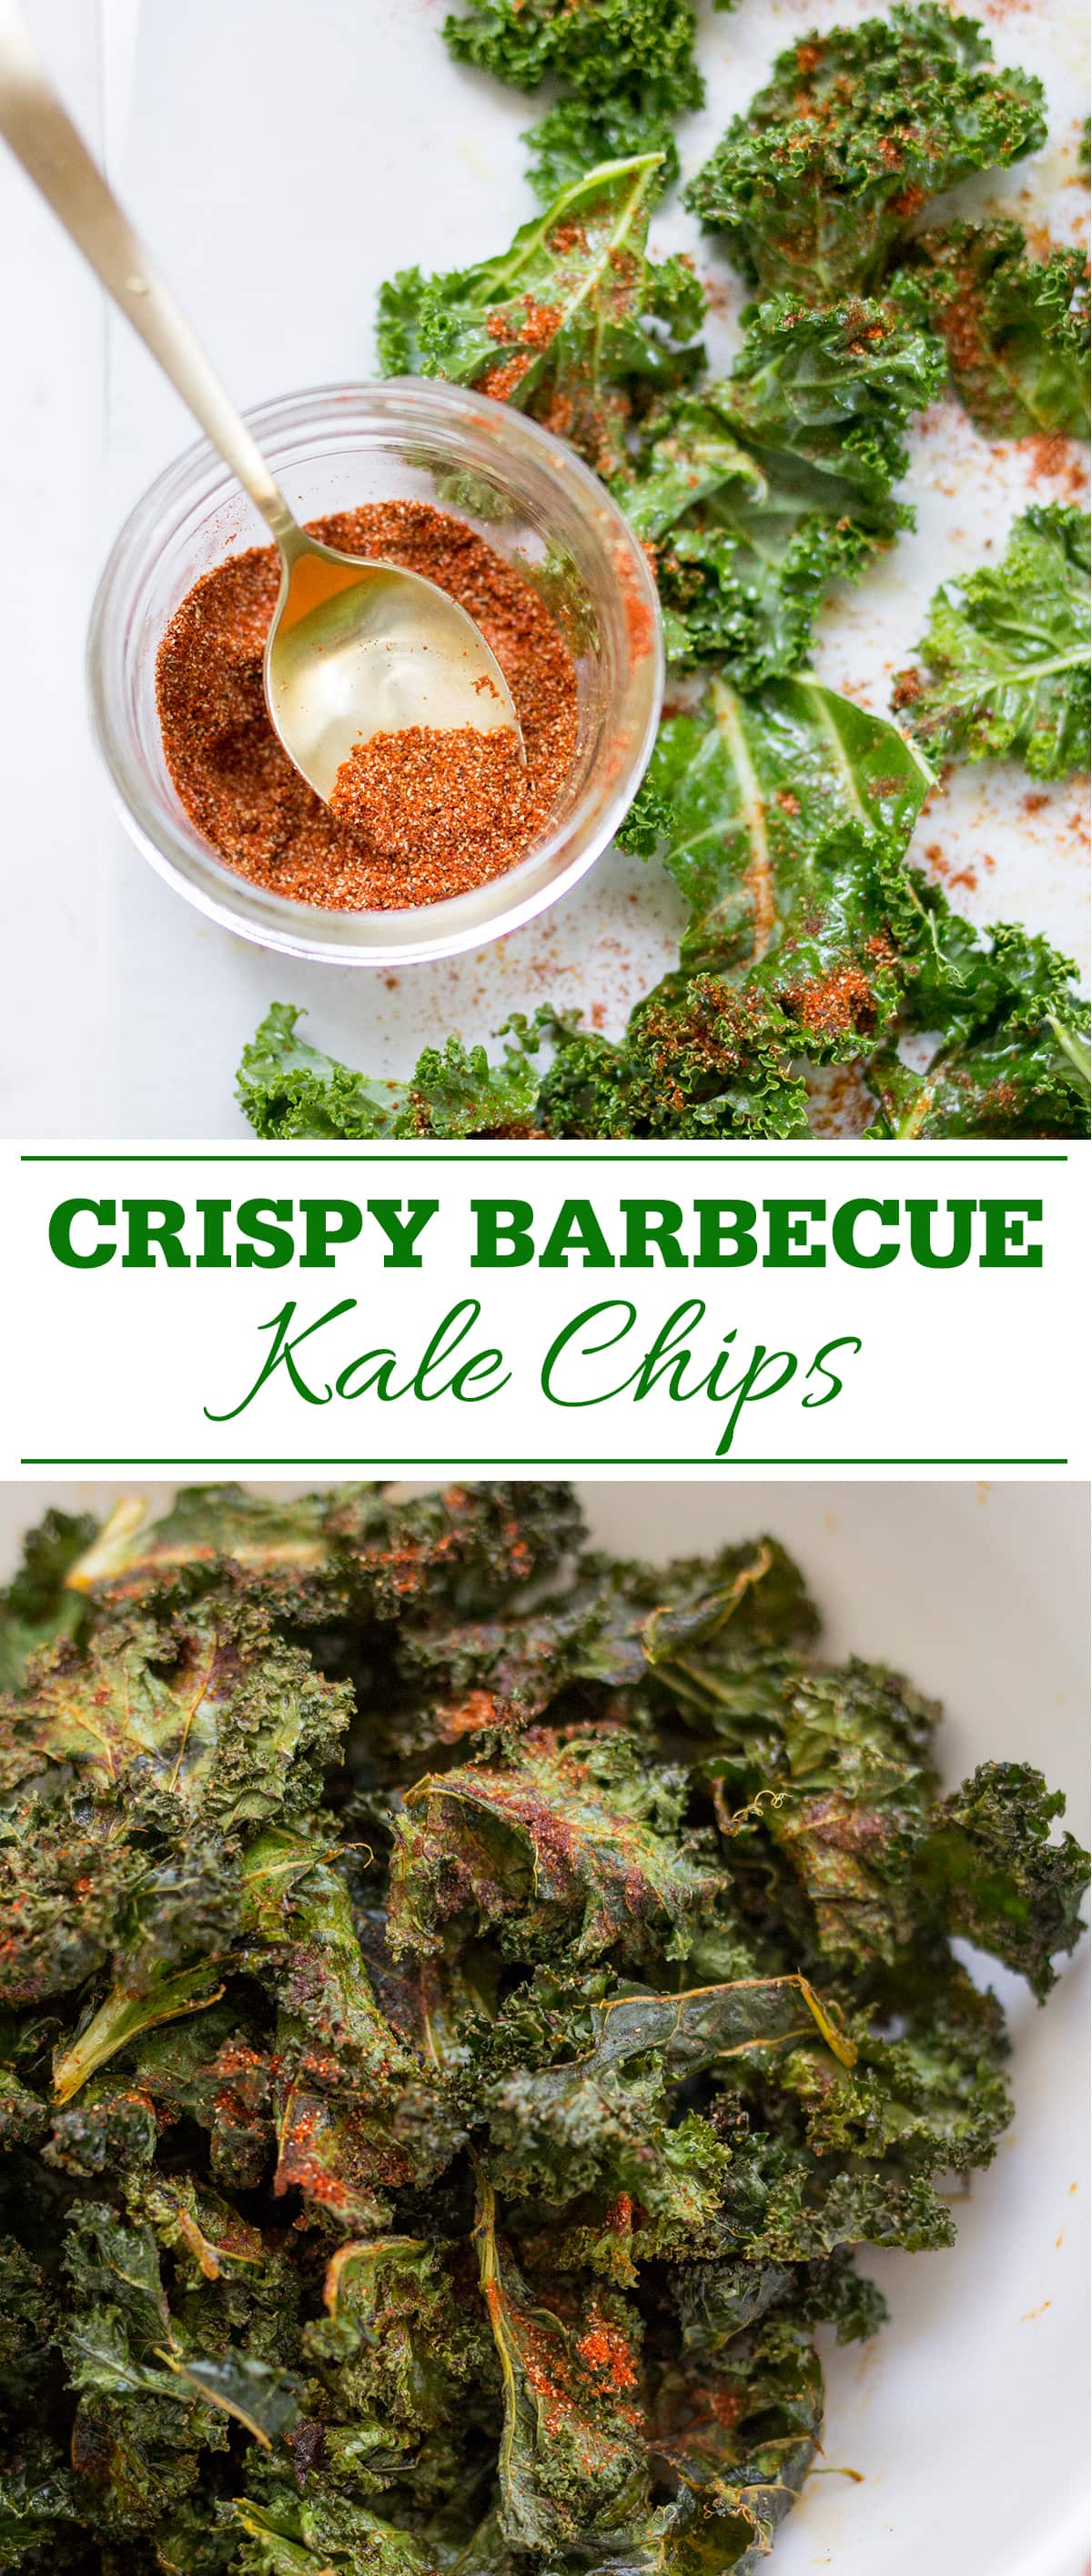 Crispy Barbecue Kale Chips Pin